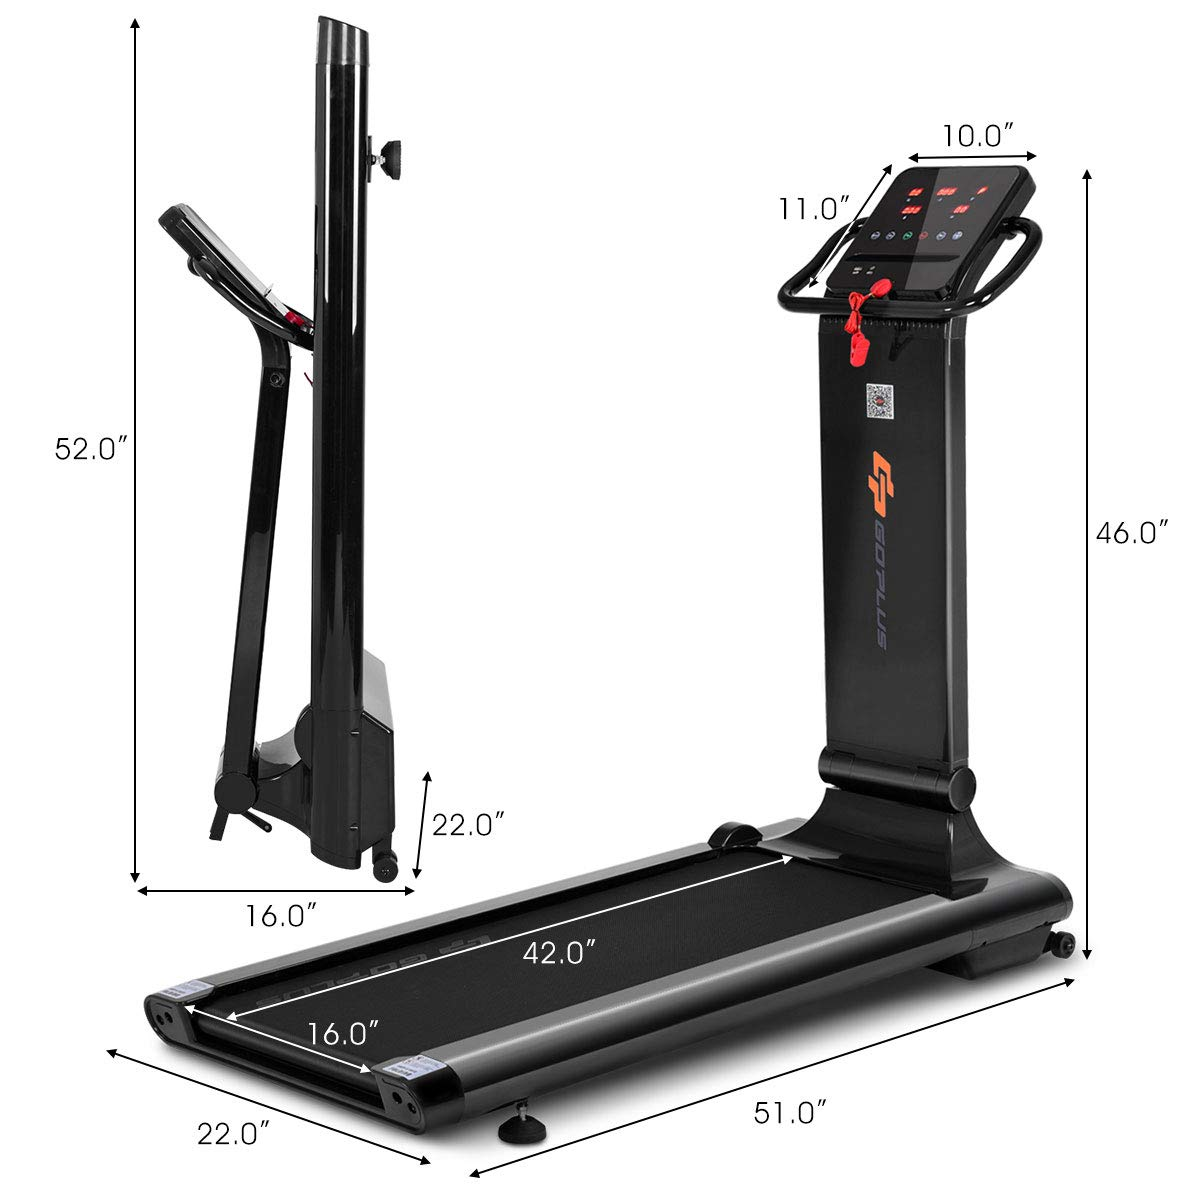 Goplus 1.5HP Electric Folding Treadmill Portable Motorized Running Machine Home Gym Cardio Fitness w/App (Black) by Goplus (Image #9)